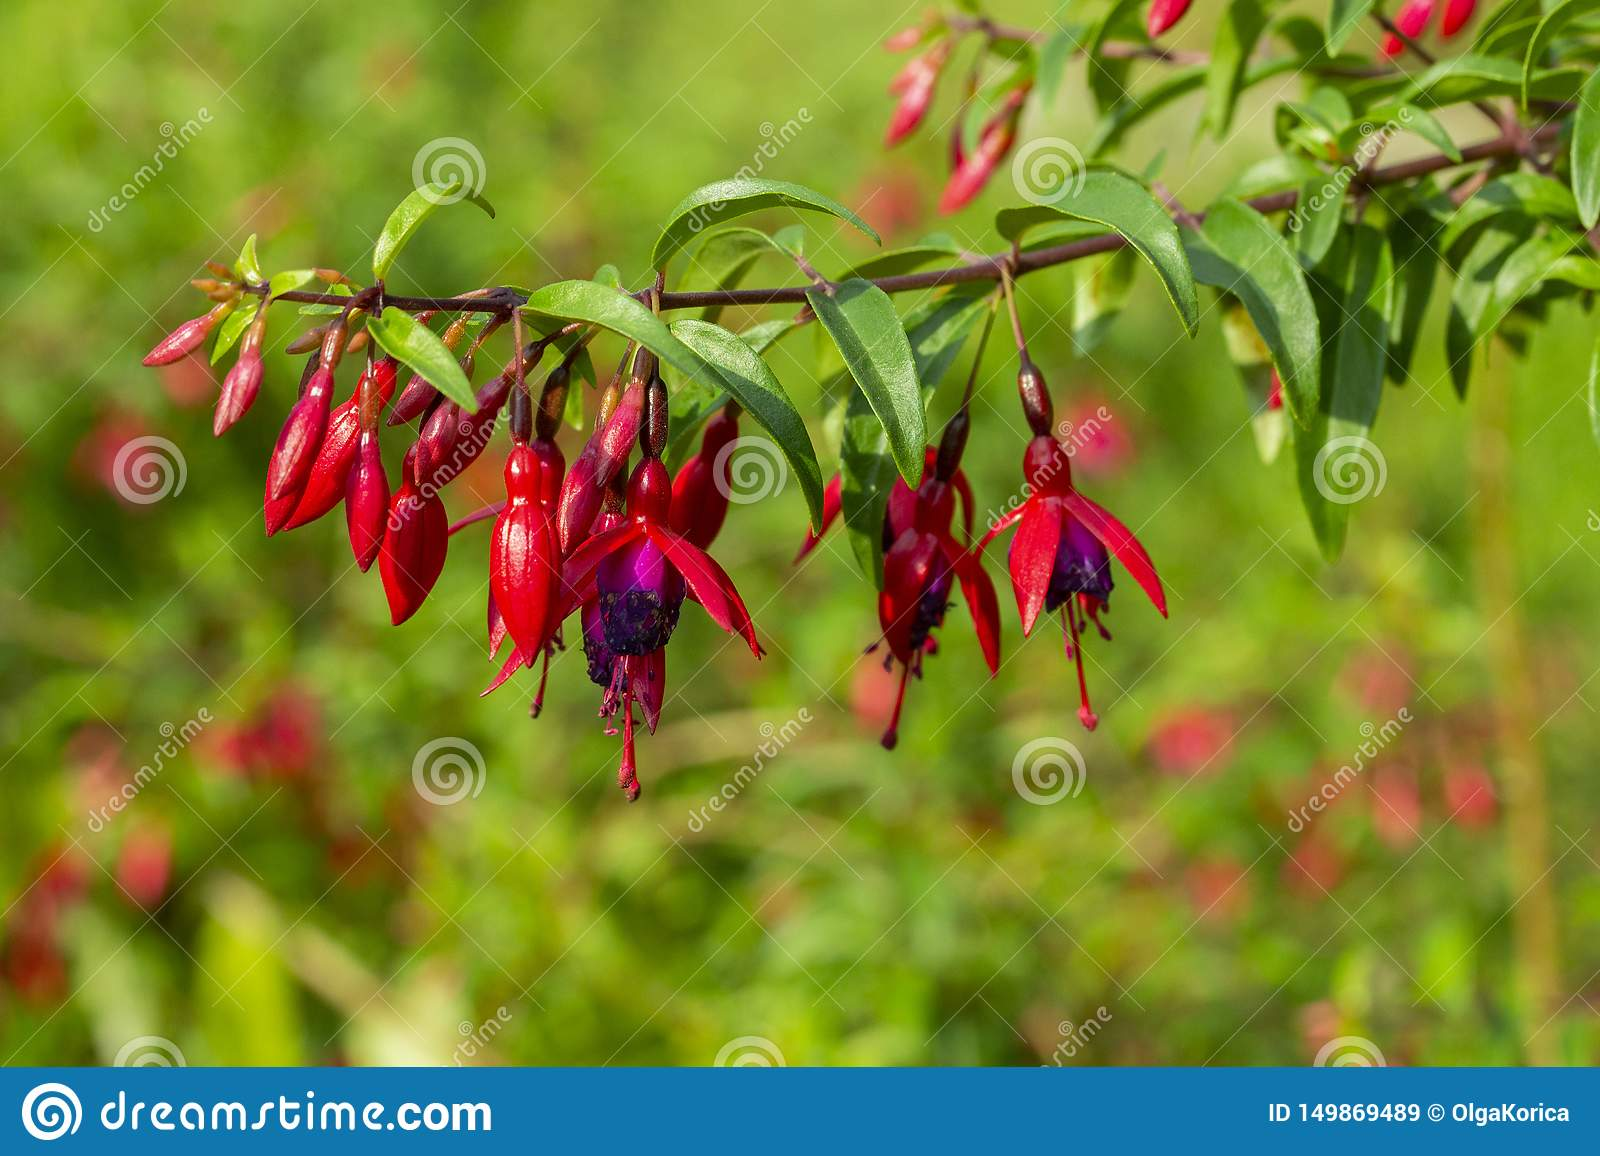 Fuchsia Blooming Cute Red Flowers A Branch Of An Evergreen